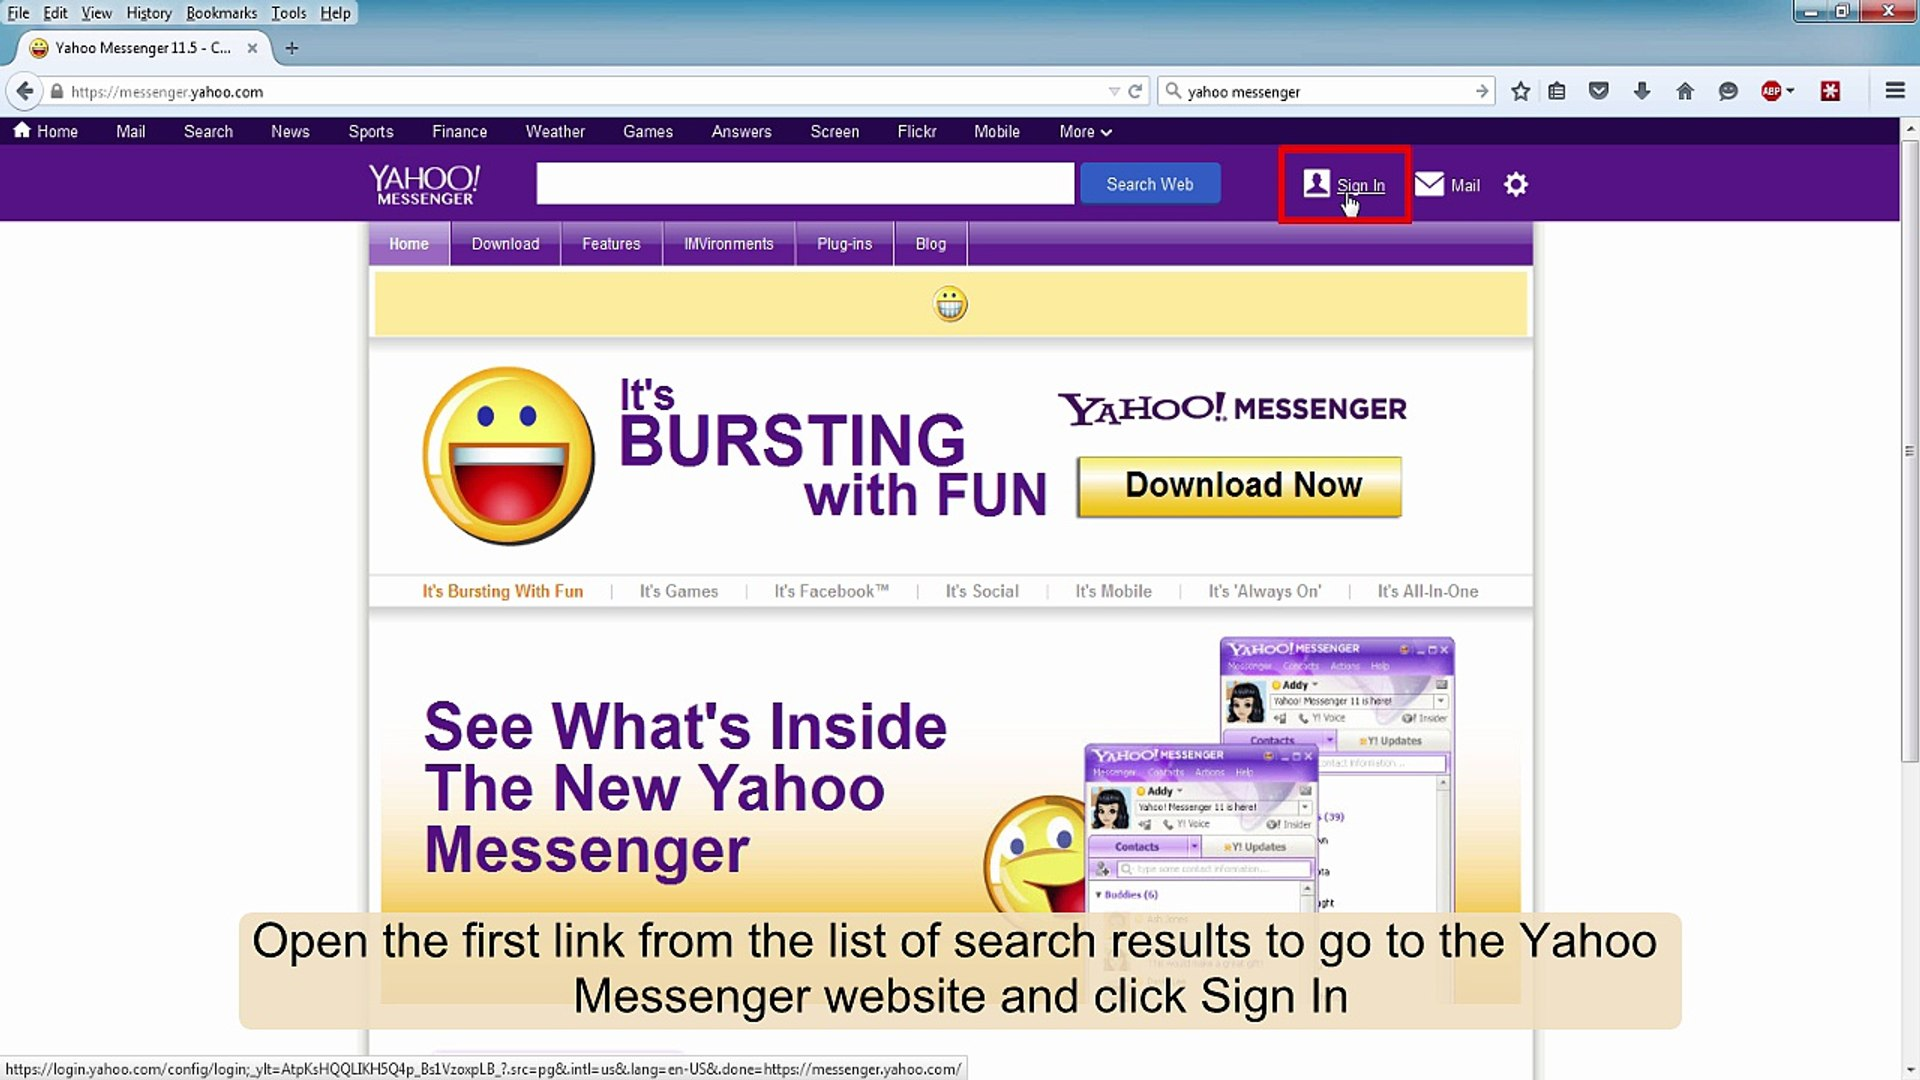 Messenger account new yahoo sign up create How to